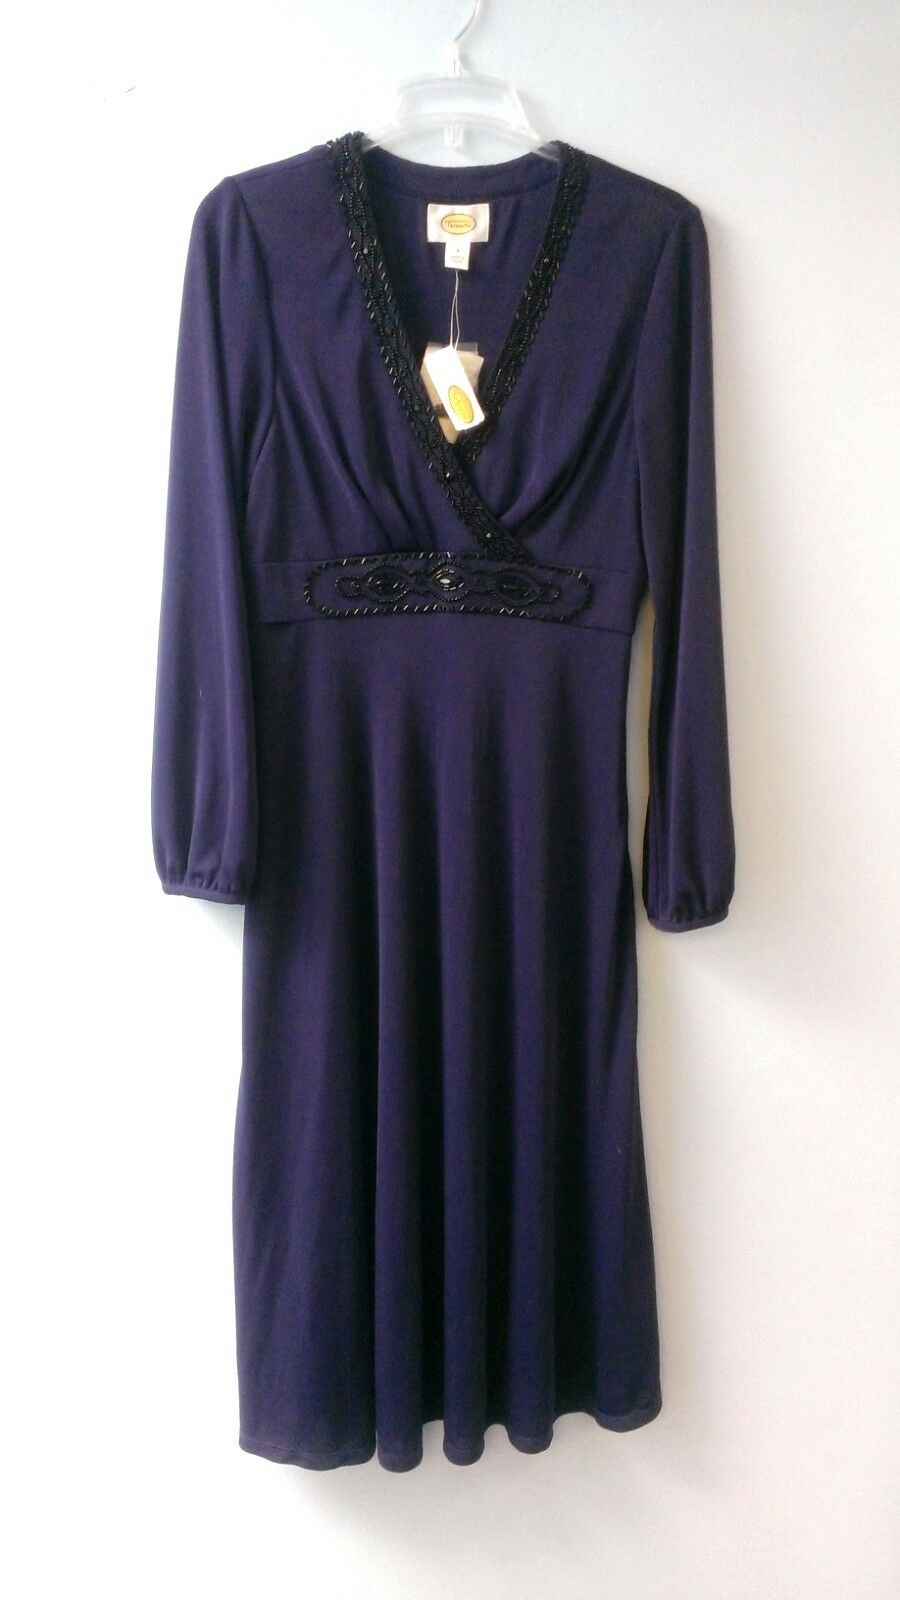 Navy-bluee, long-sleeved A-line dress by Talbots